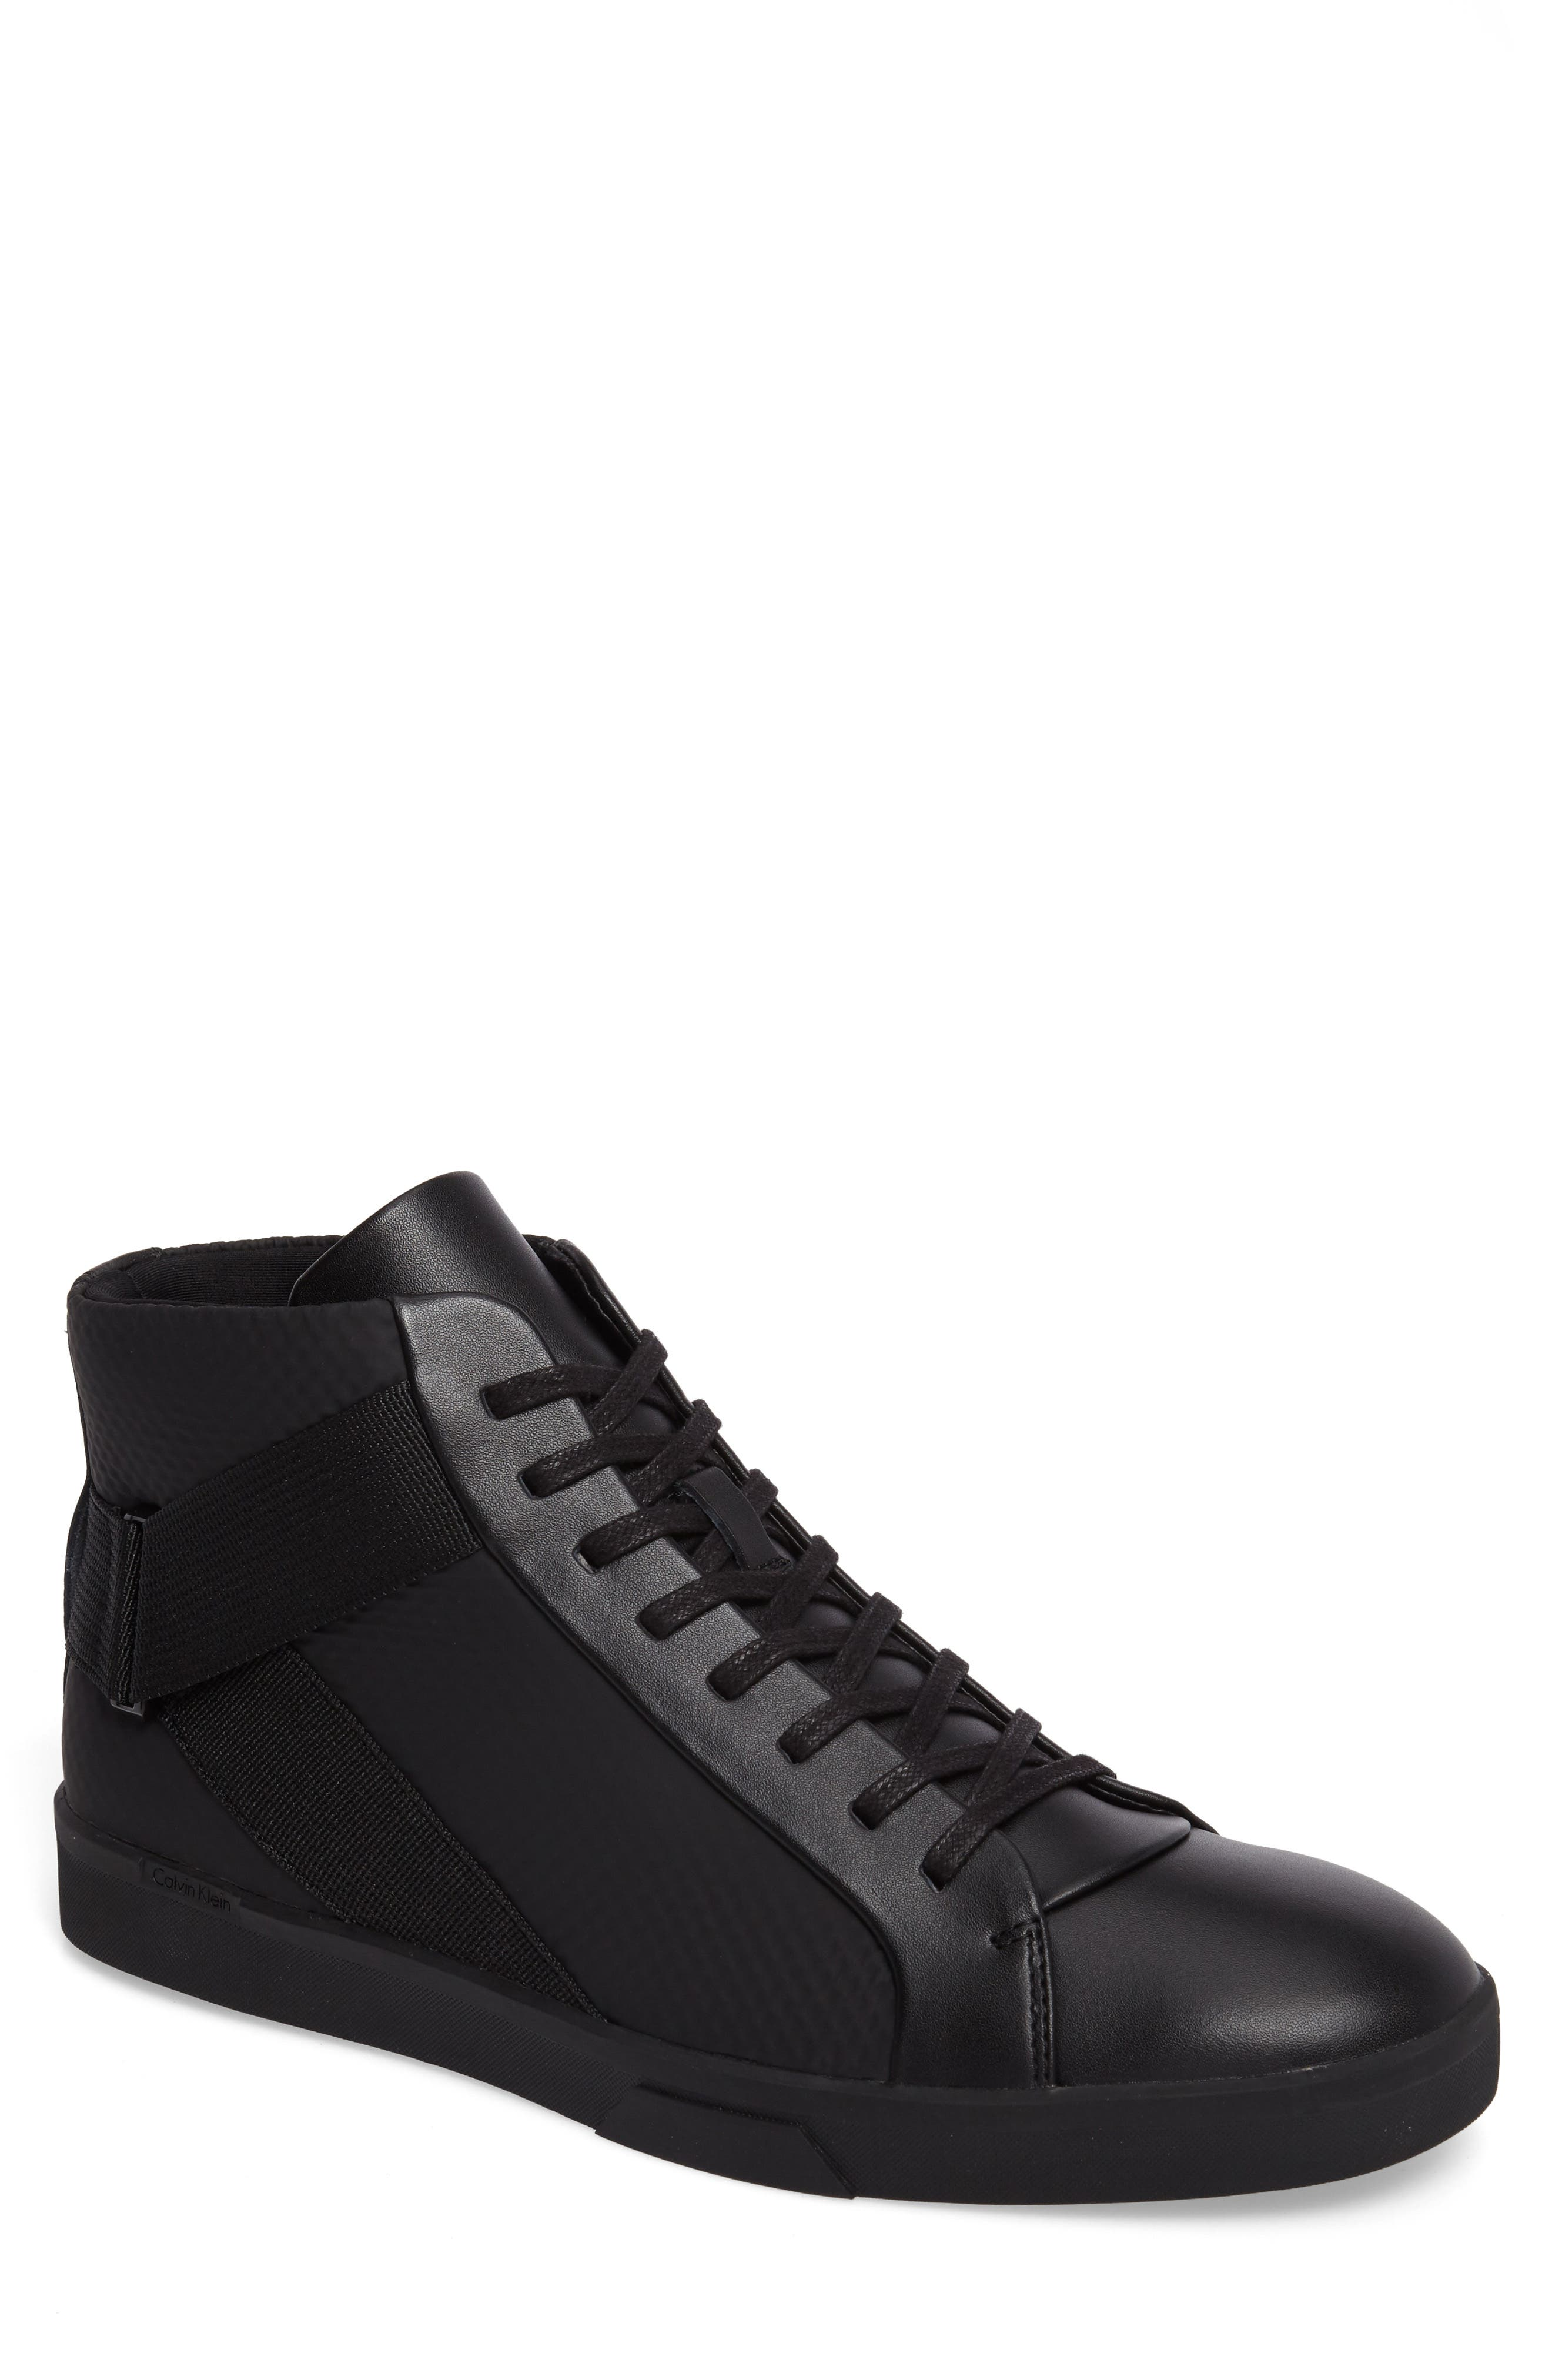 Alternate Image 1 Selected - Calvin Klein Irvin Sneaker (Men)